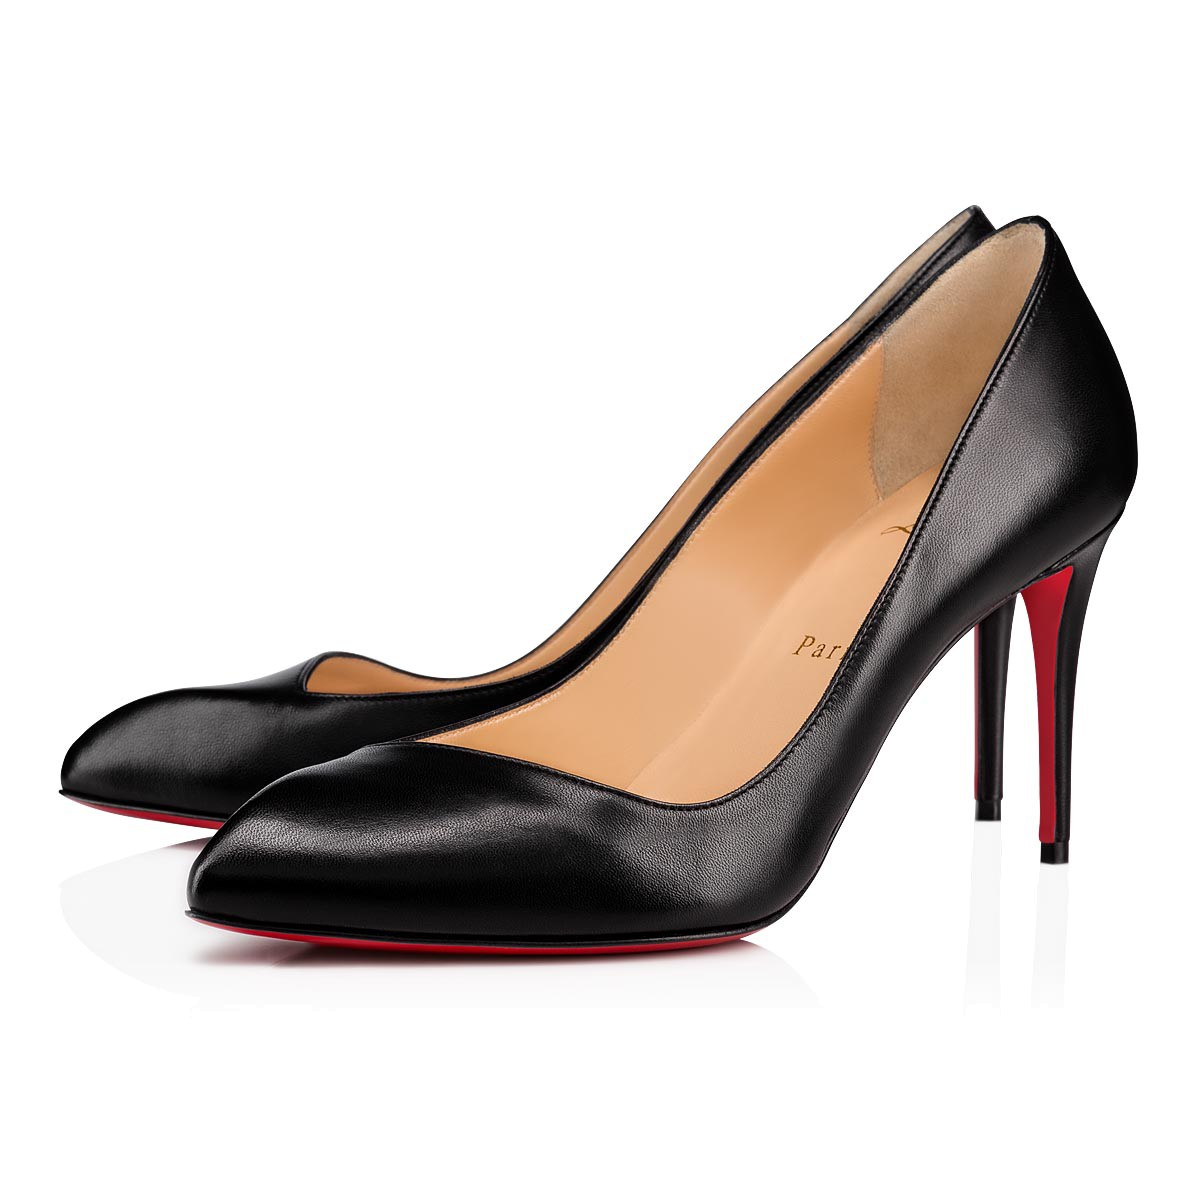 3c373bca234 Corneille 85 Black Leather - Women Shoes - Christian Louboutin